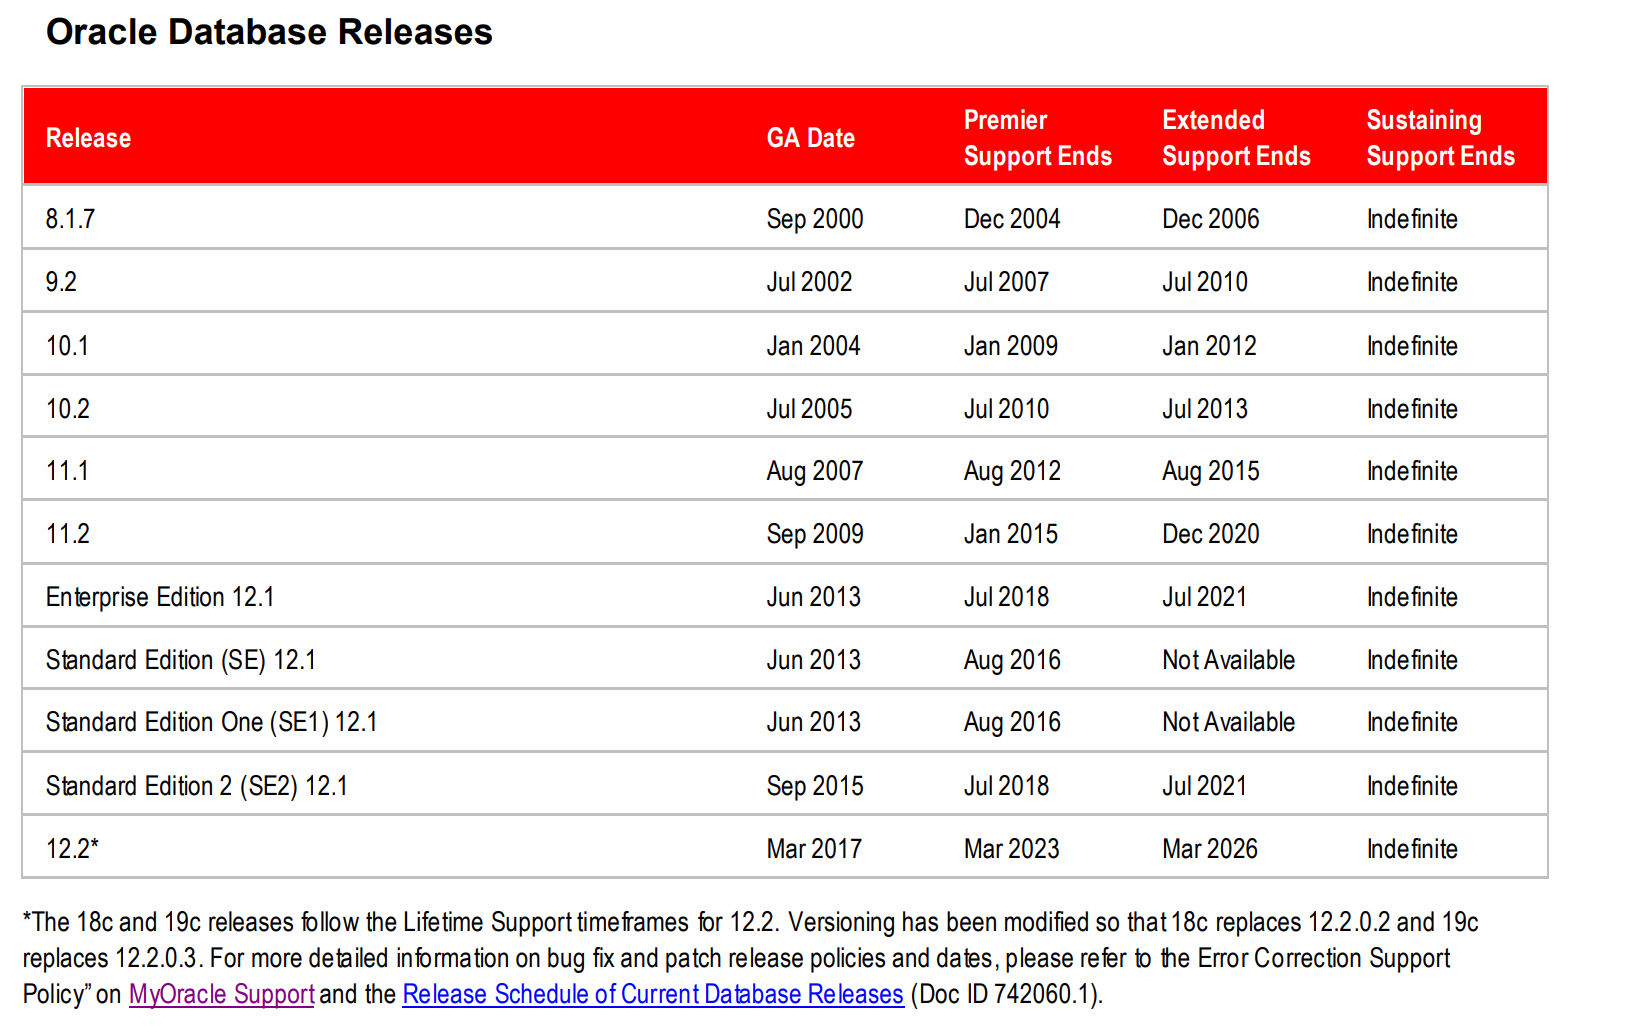 Oracle Database Supported extended versions